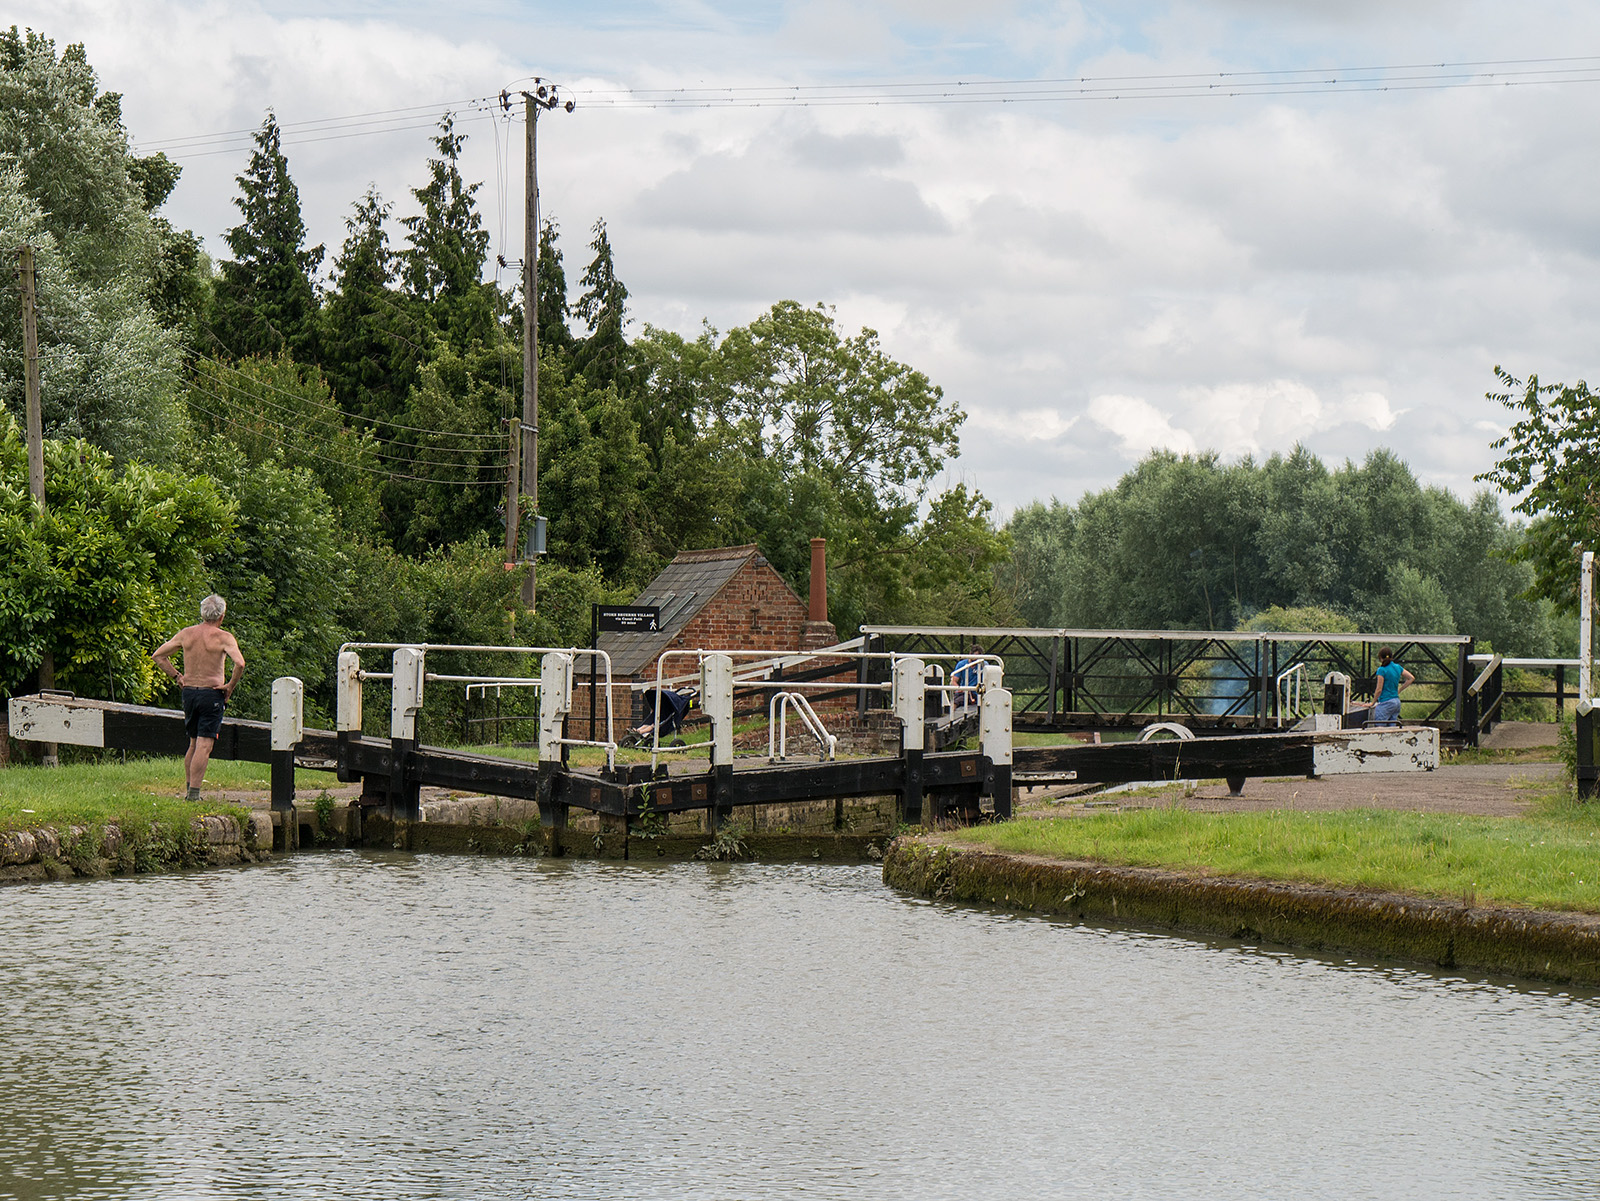 Top gates closed, bottoms open, boat entering the bottom of the Stoke Bruerne flight